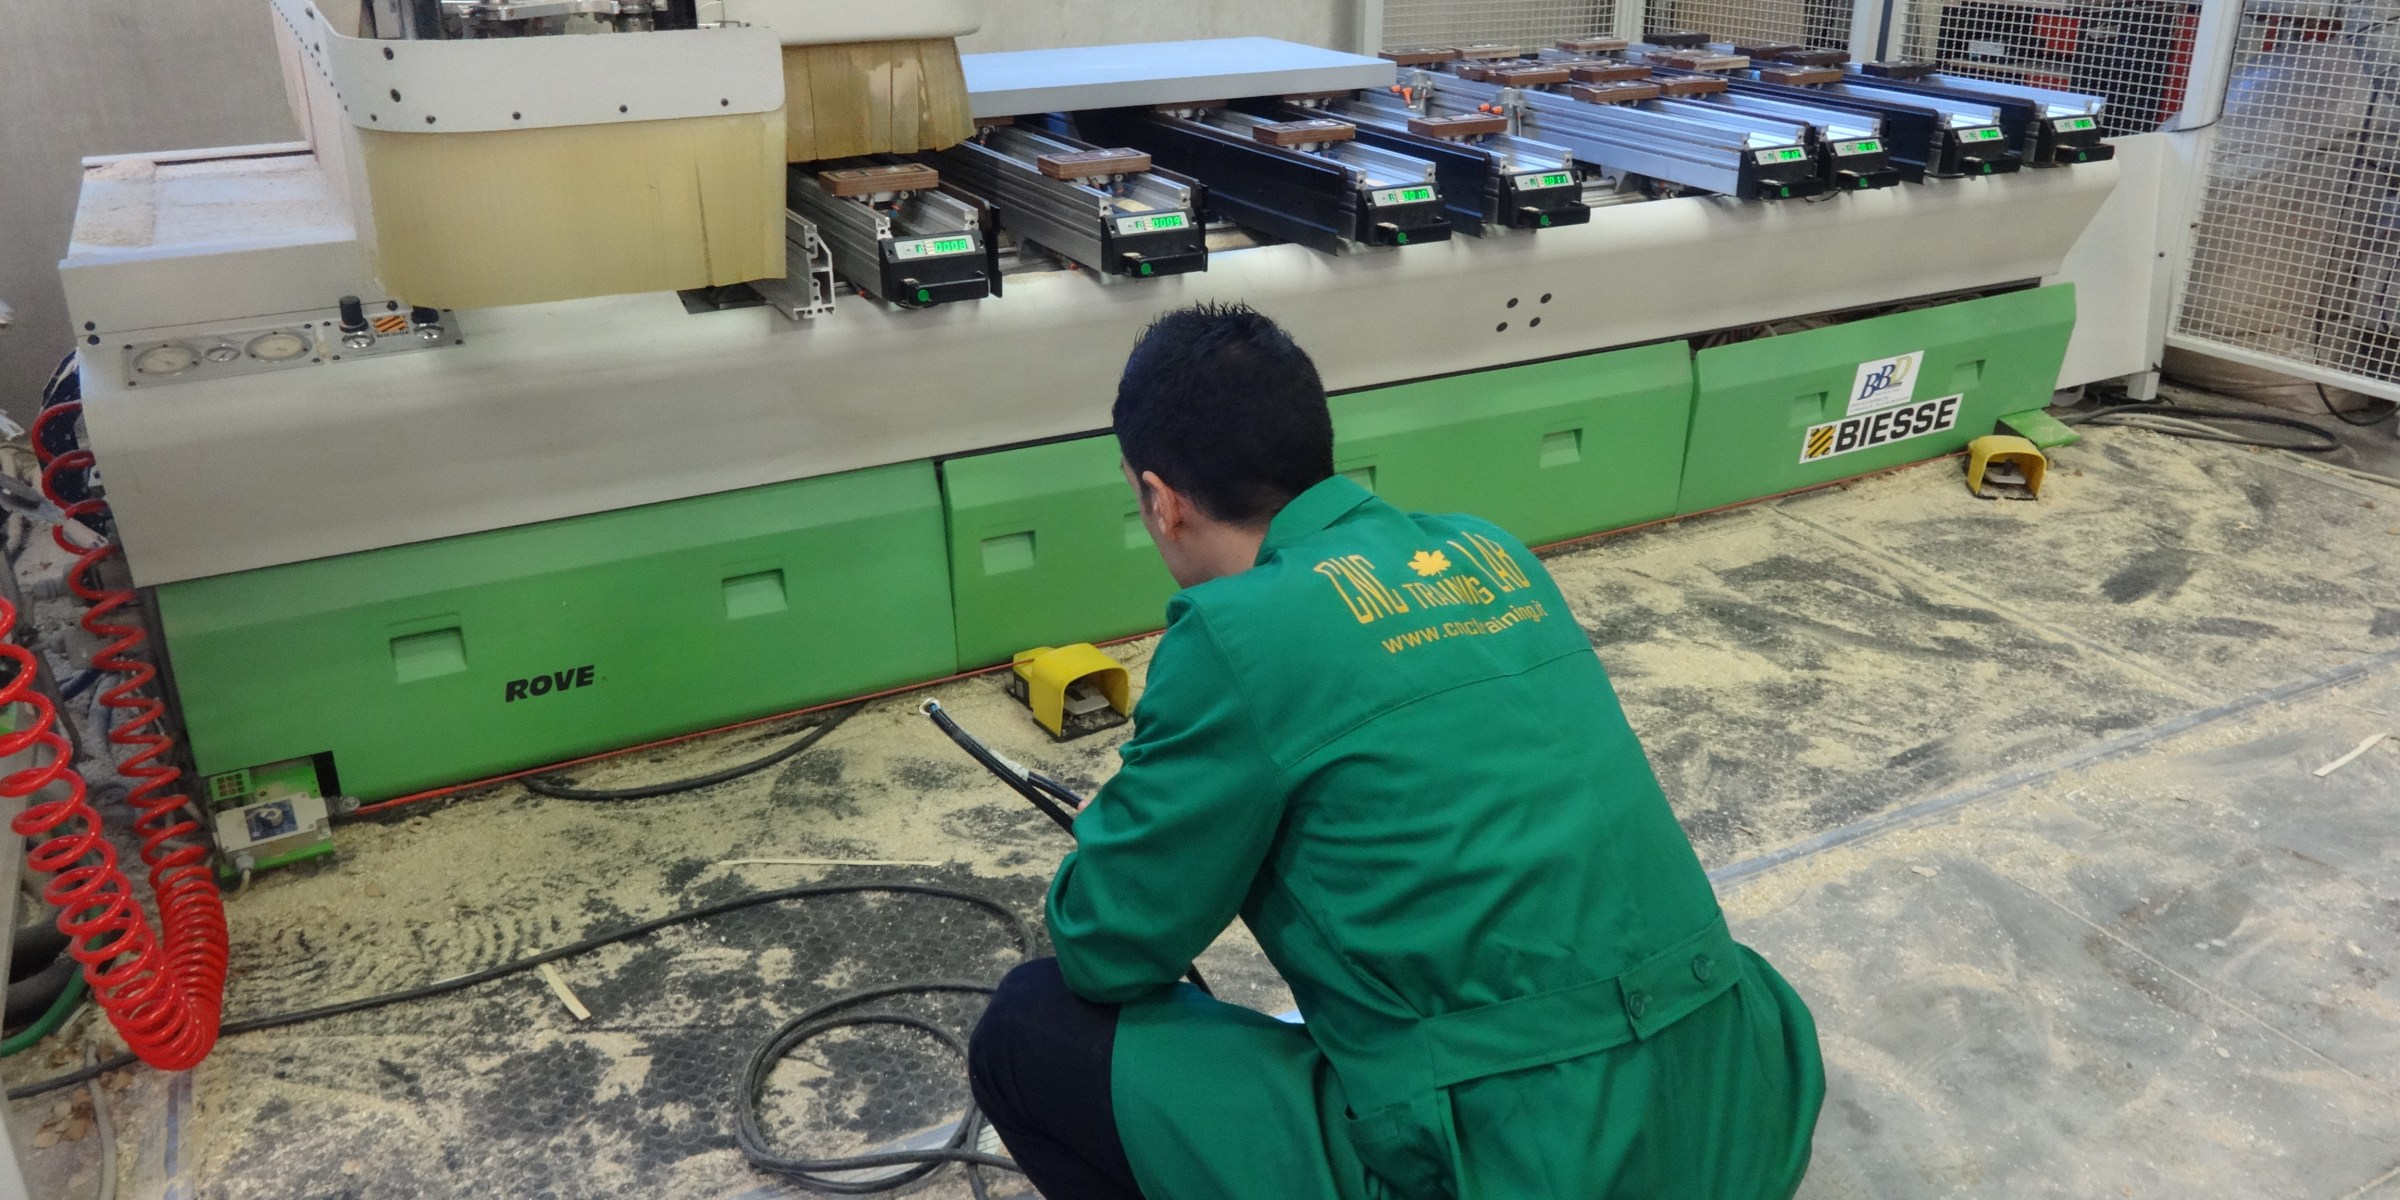 cnc-training-lab-corso-pantografo-cnc